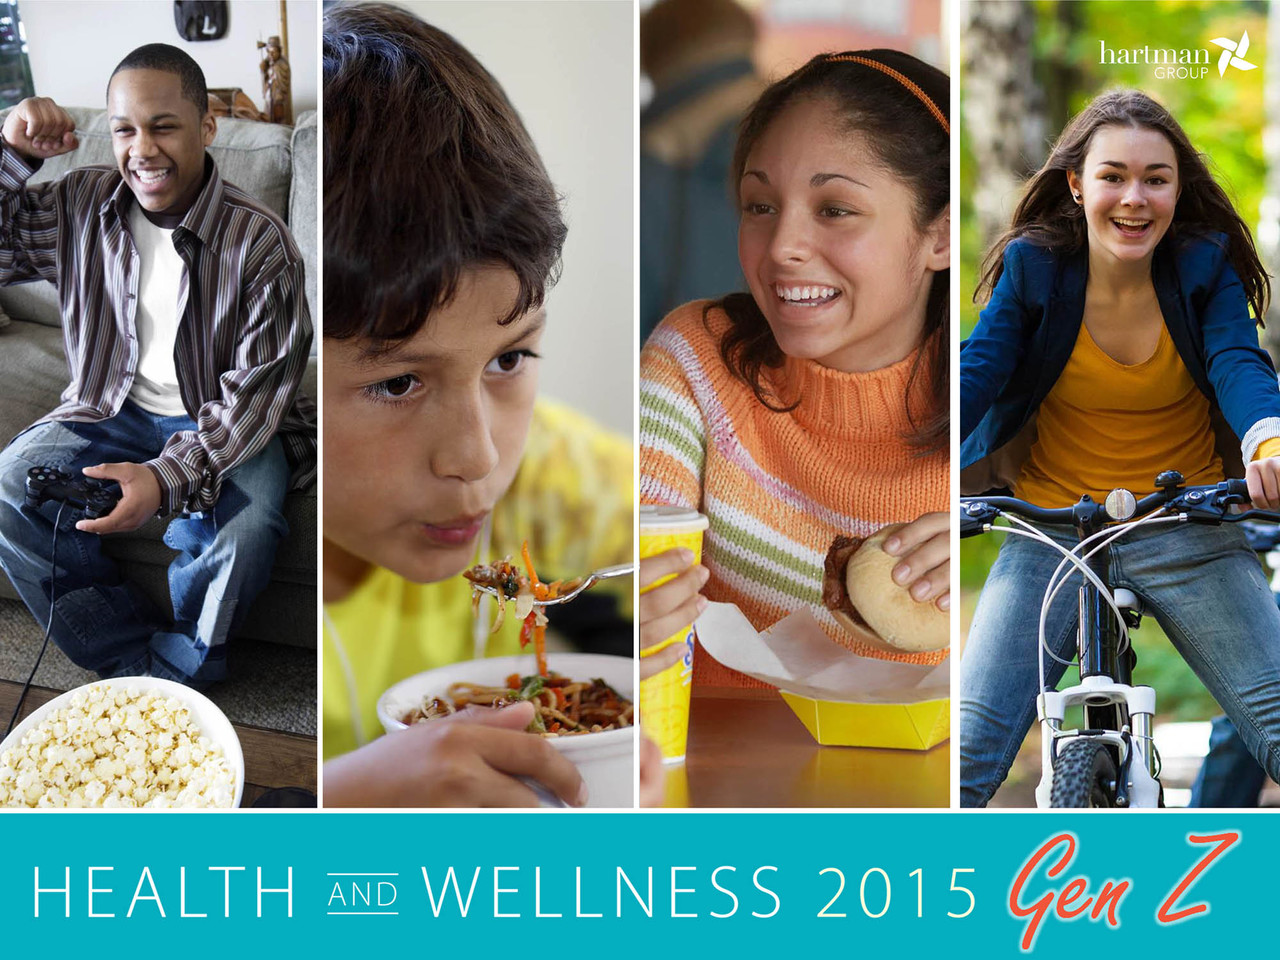 Special Report: How Gen Z Looks at Health & Wellness